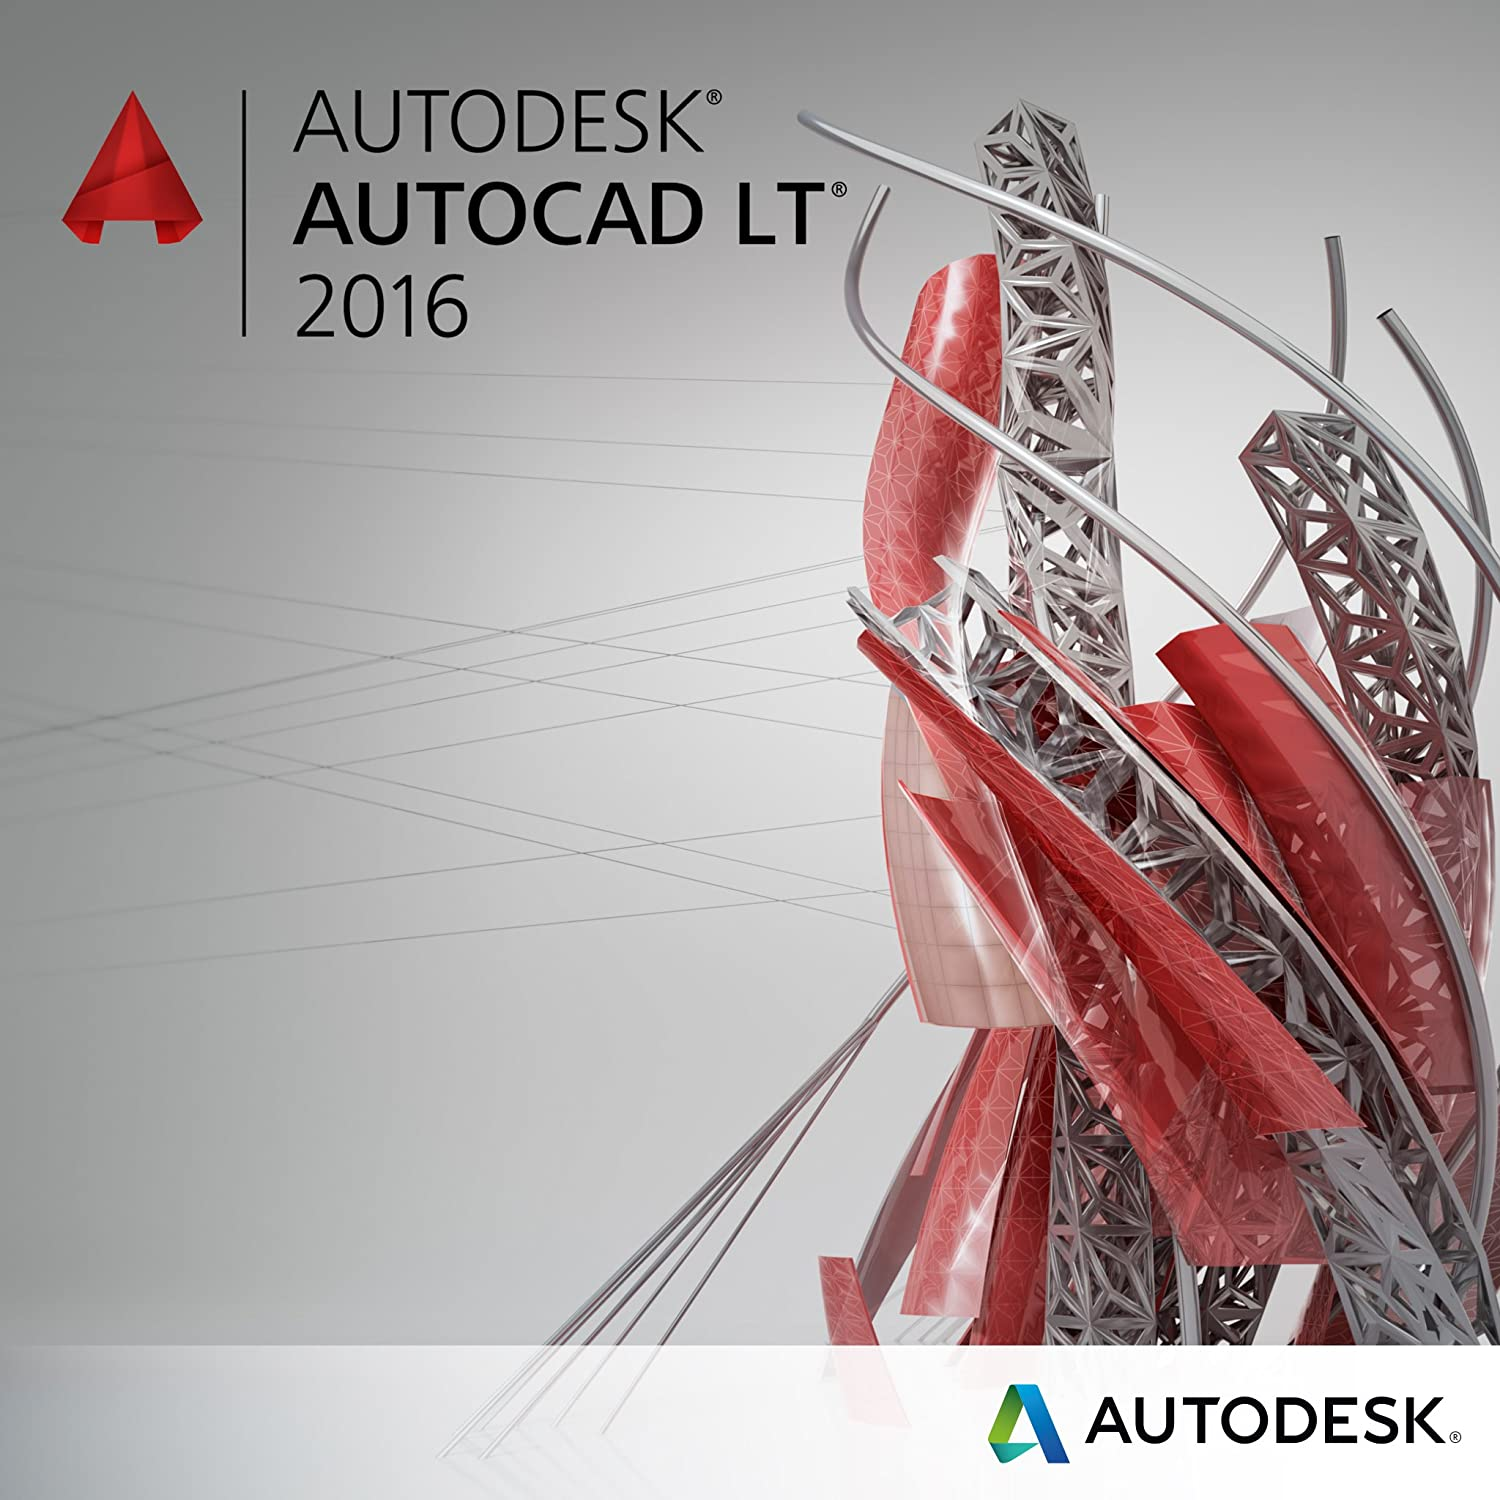 can you purchase AutoCAD LT 2015 outright?